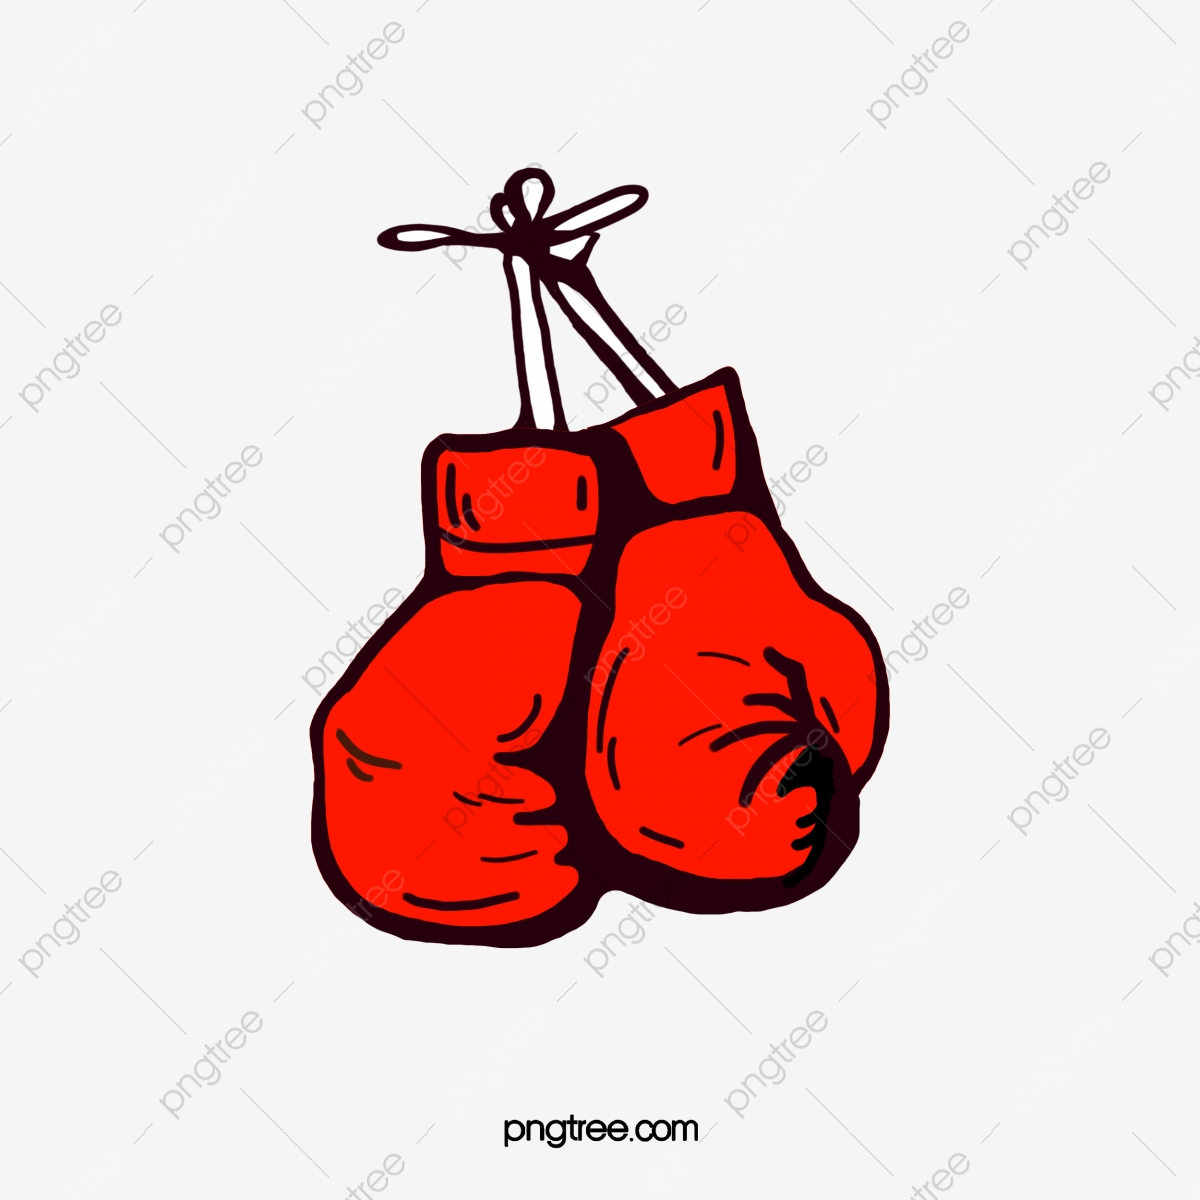 Boxing clipart boxing fight. A pair of red